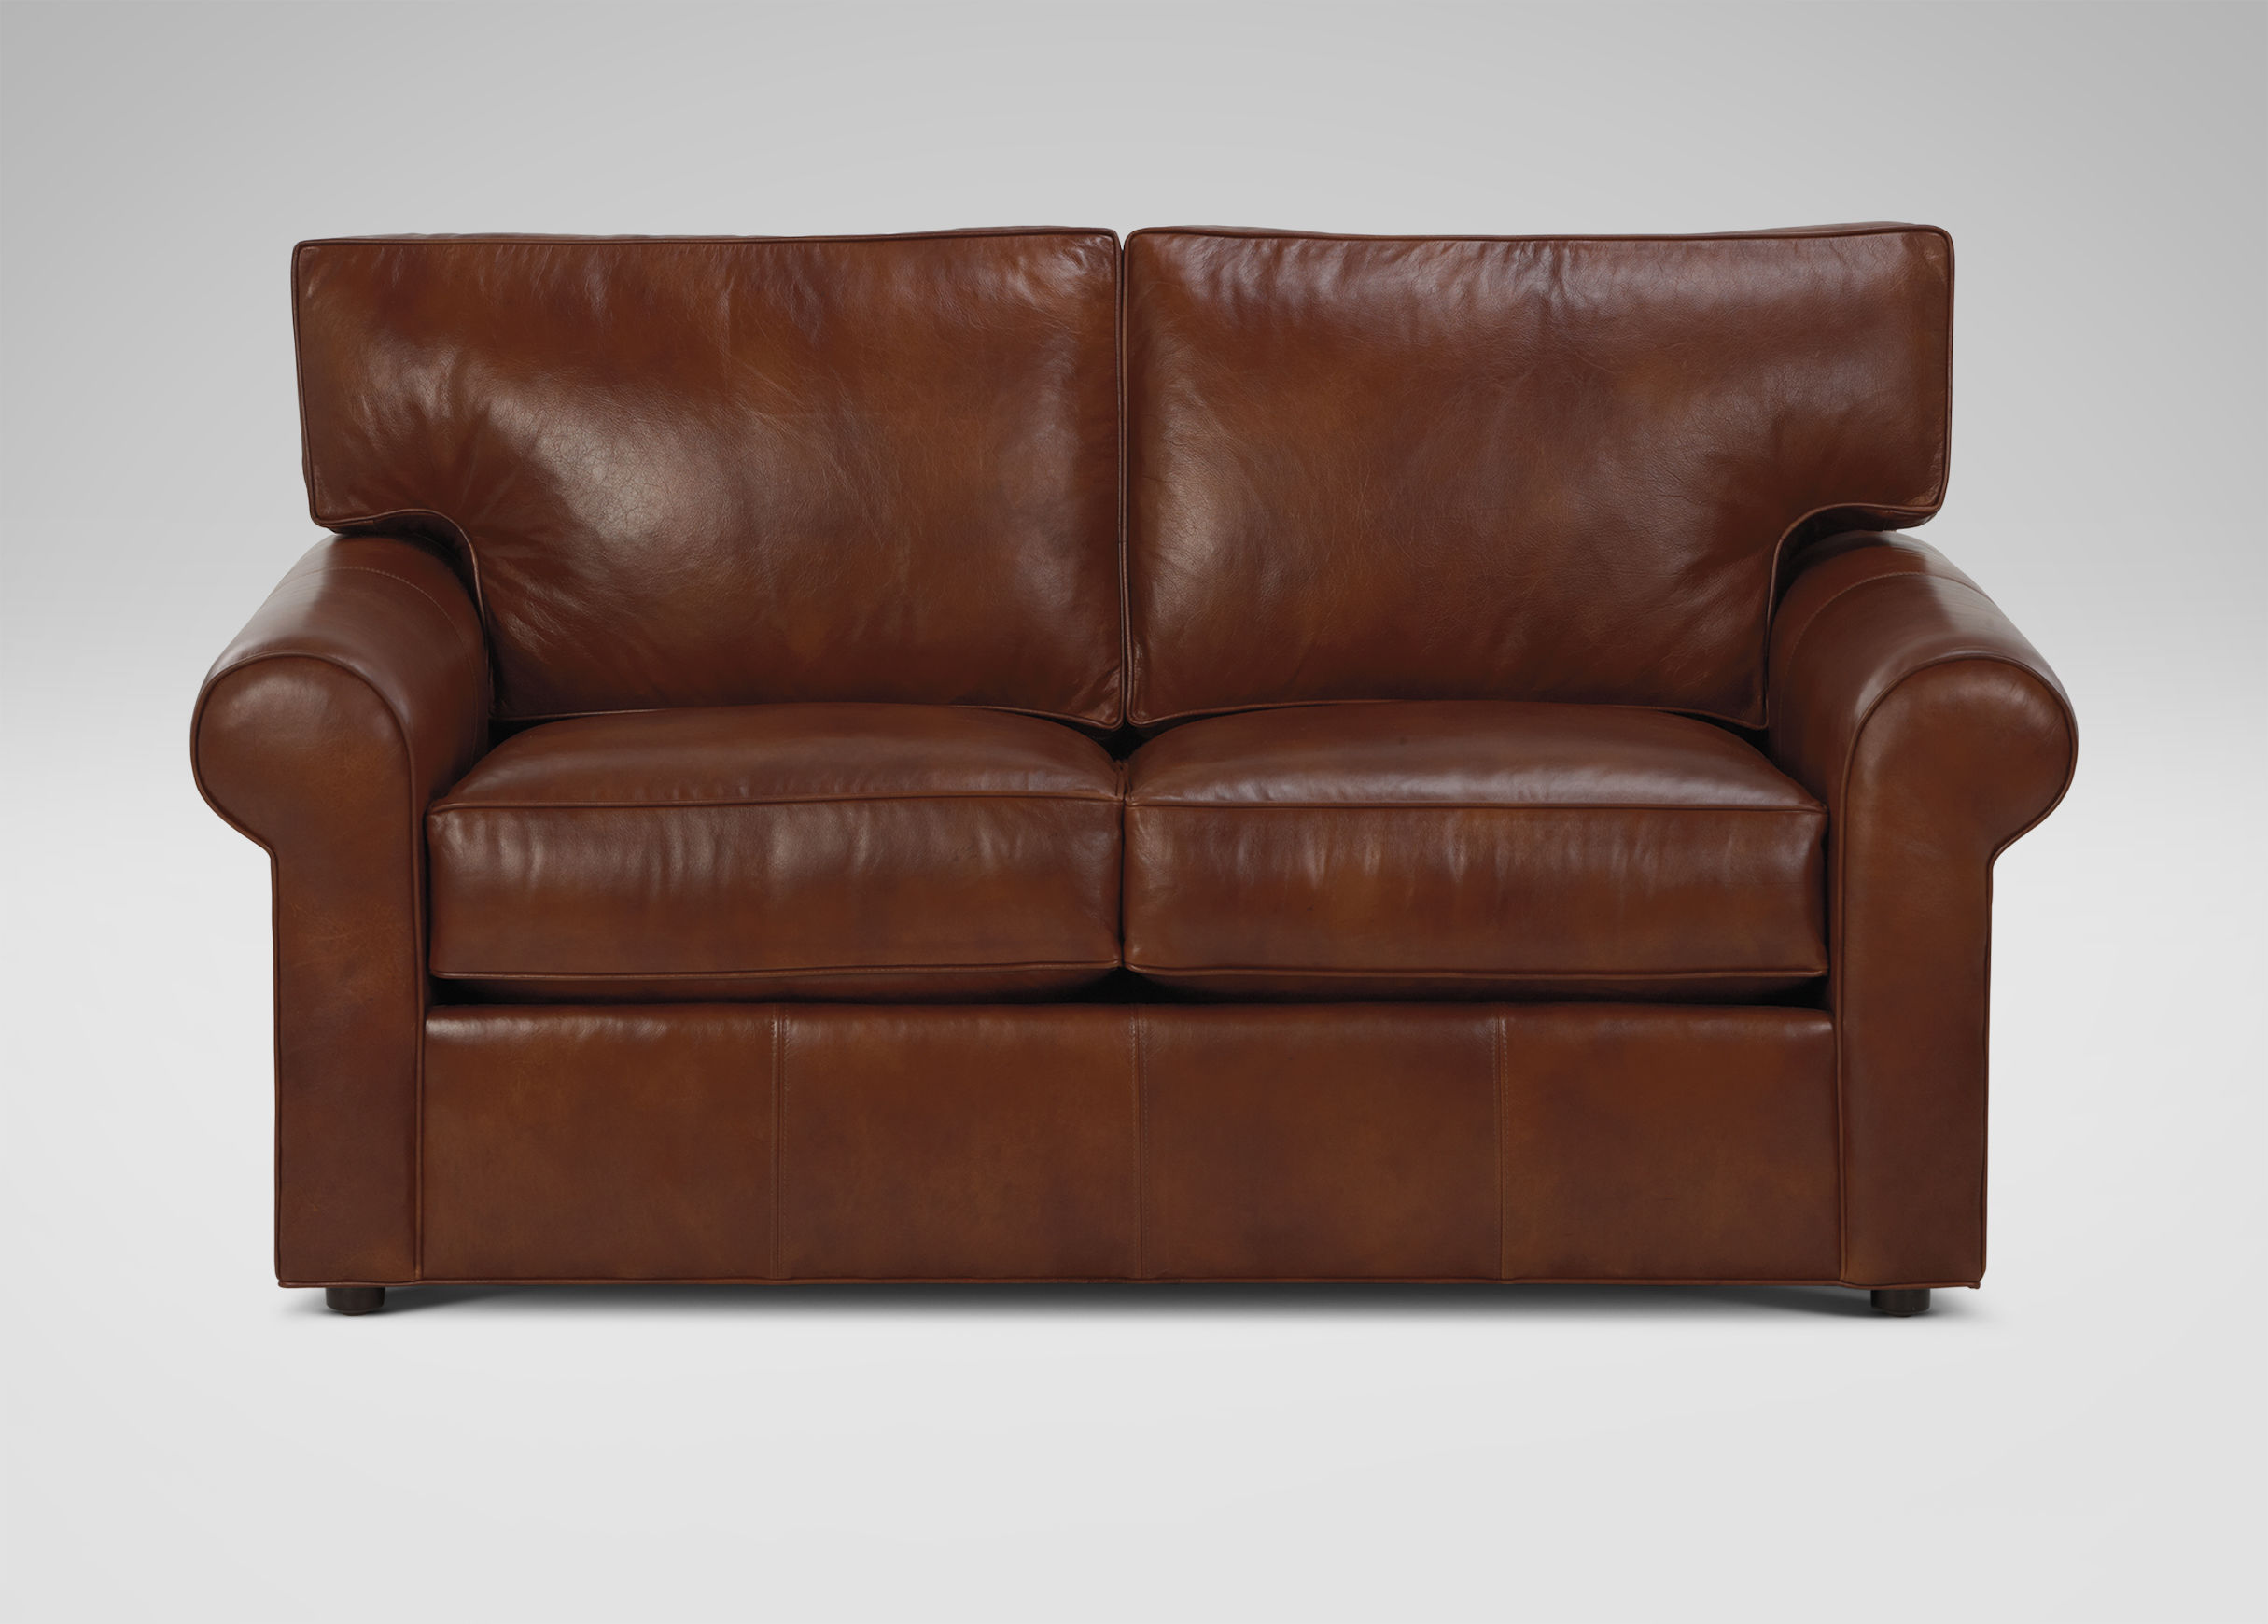 Ethan allen leather furniture homesfeed for Ethan allen furniture